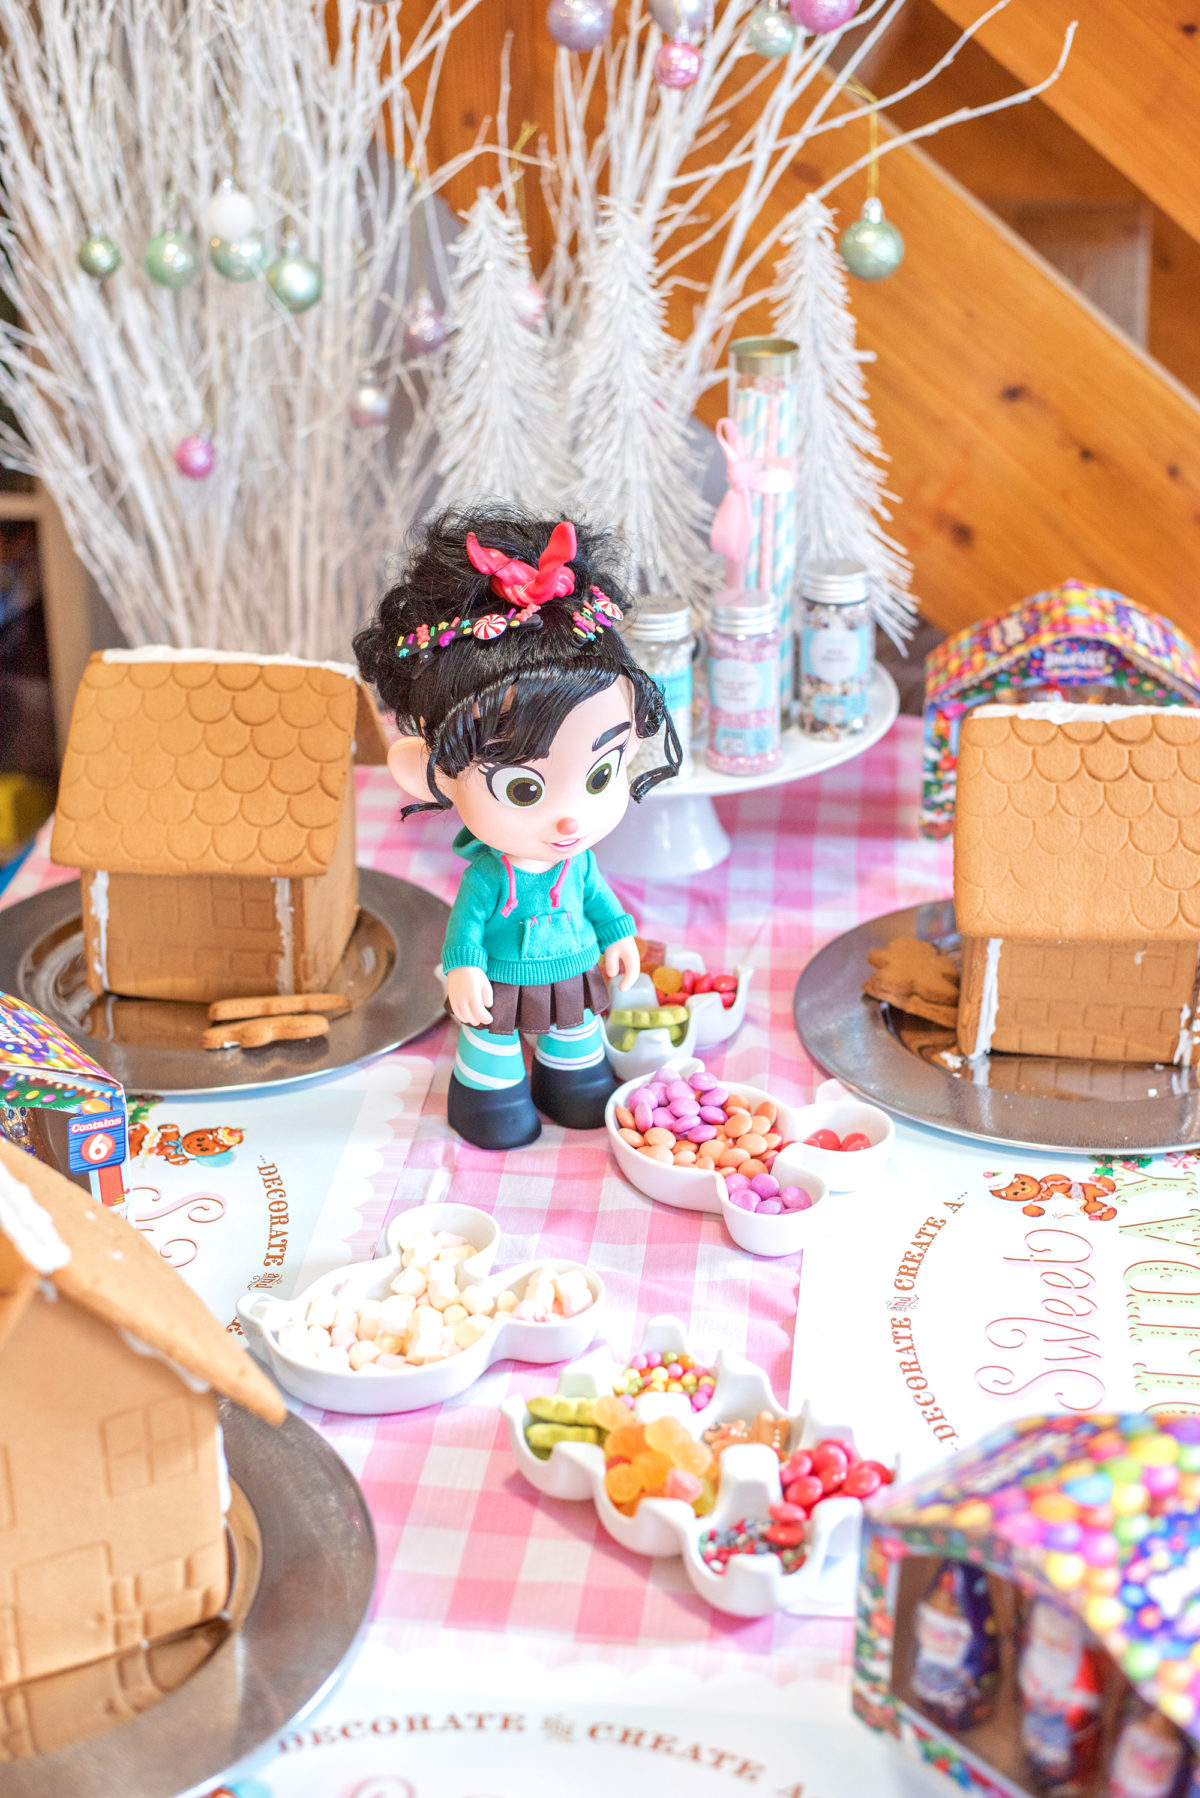 ShopDisney Wreck it Ralph toys Gingerbread party